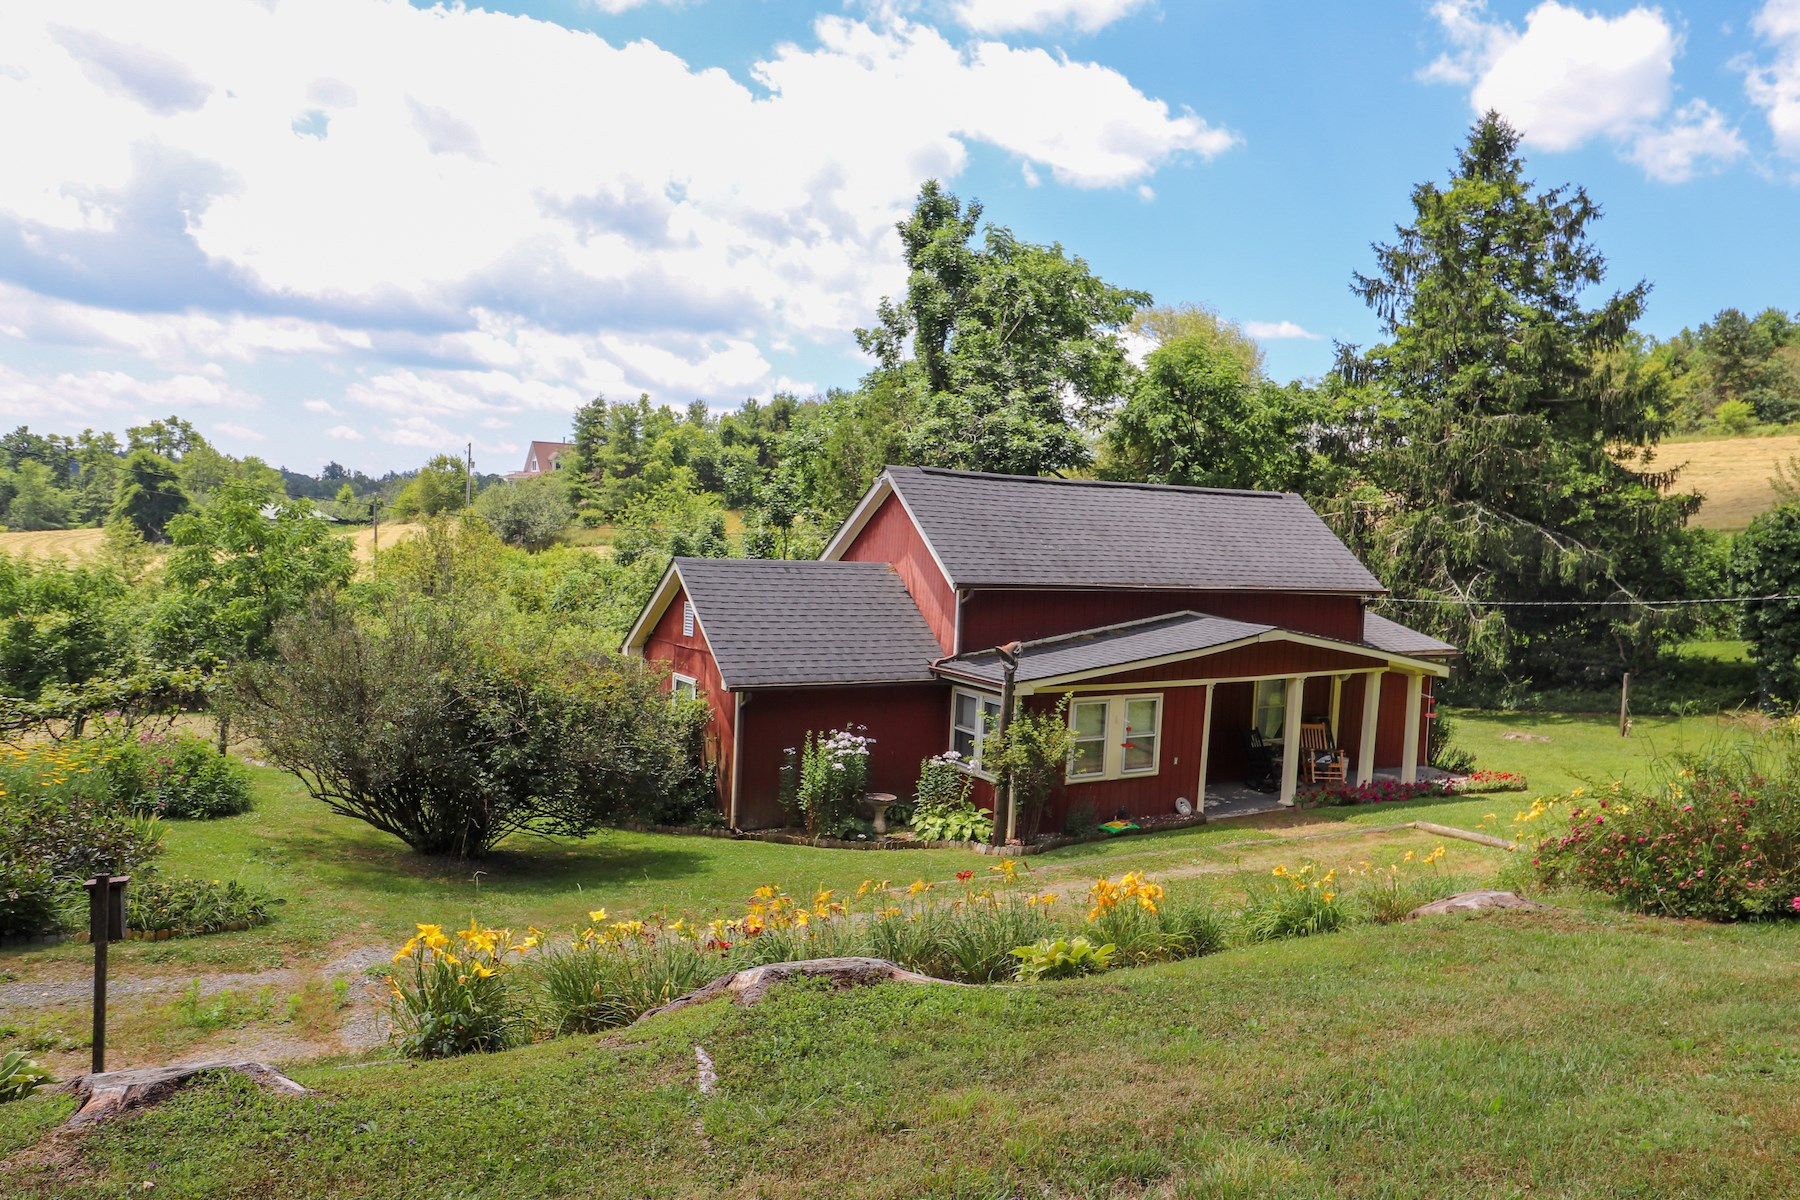 Sweet Country Home for Sale in in Meadows of Dan VA!